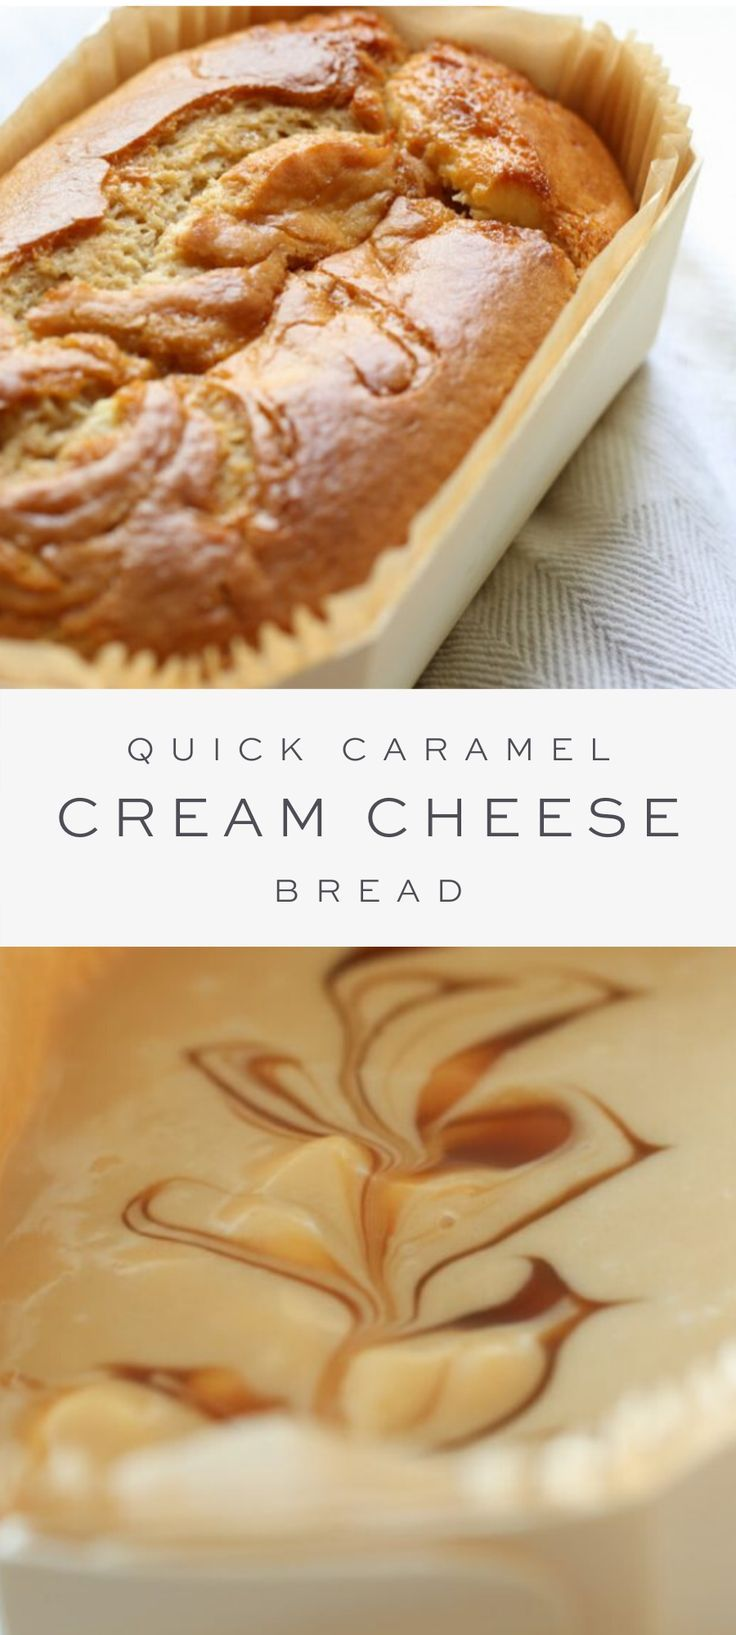 Quick Caramel Cream Cheese Bread Recipe {Cheesecake Bread} -   17 desserts Caramel cream cheeses ideas